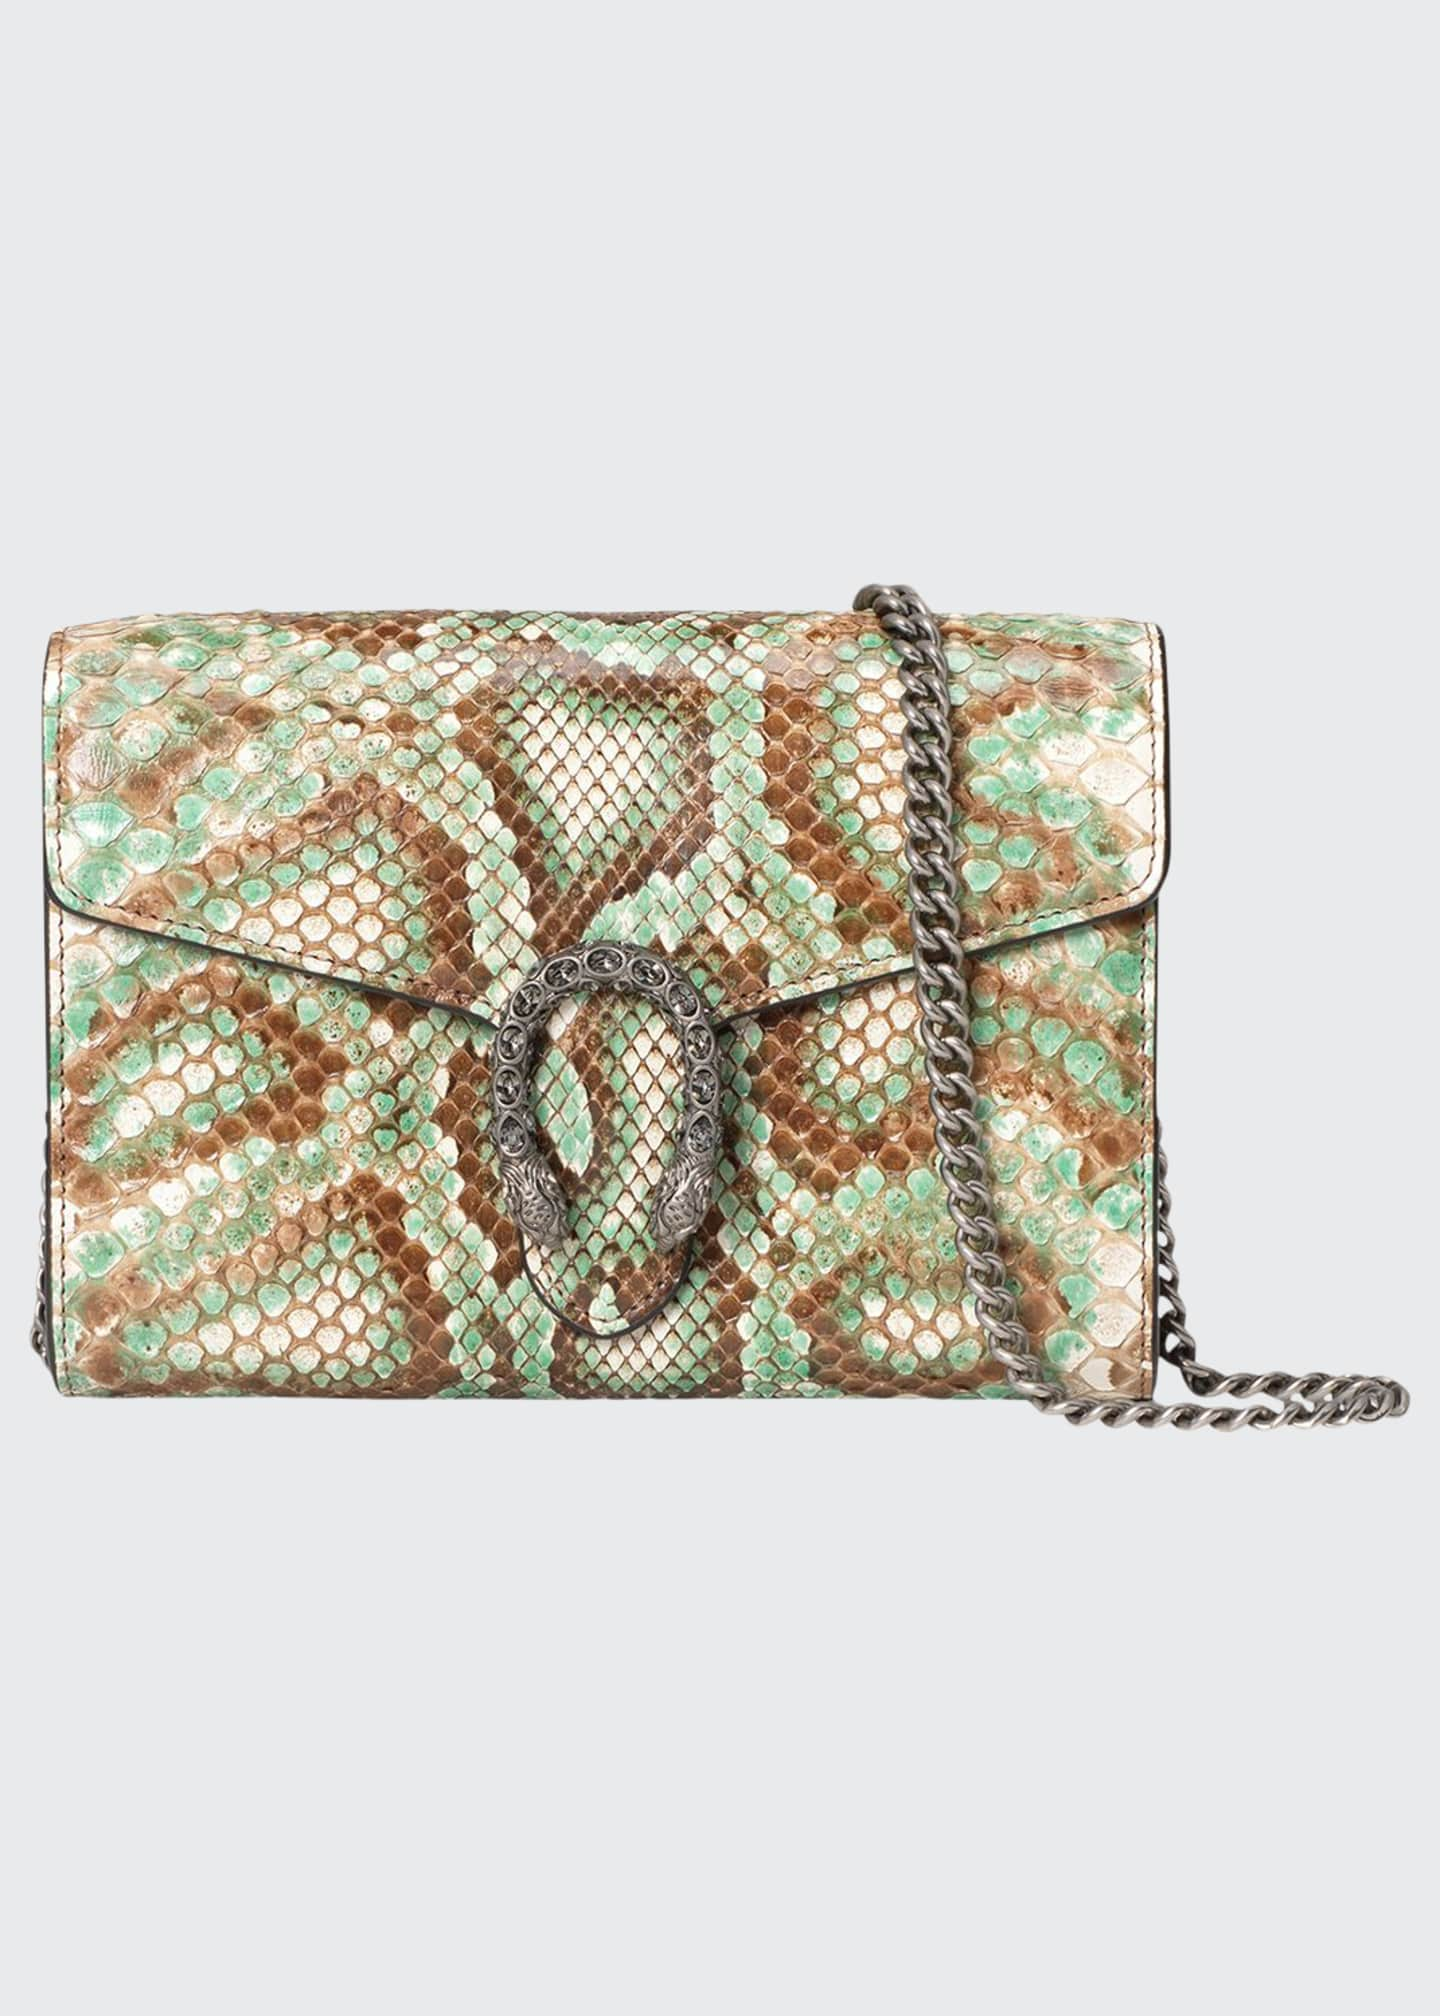 Gucci Dionysus Mini Python Chain Bag